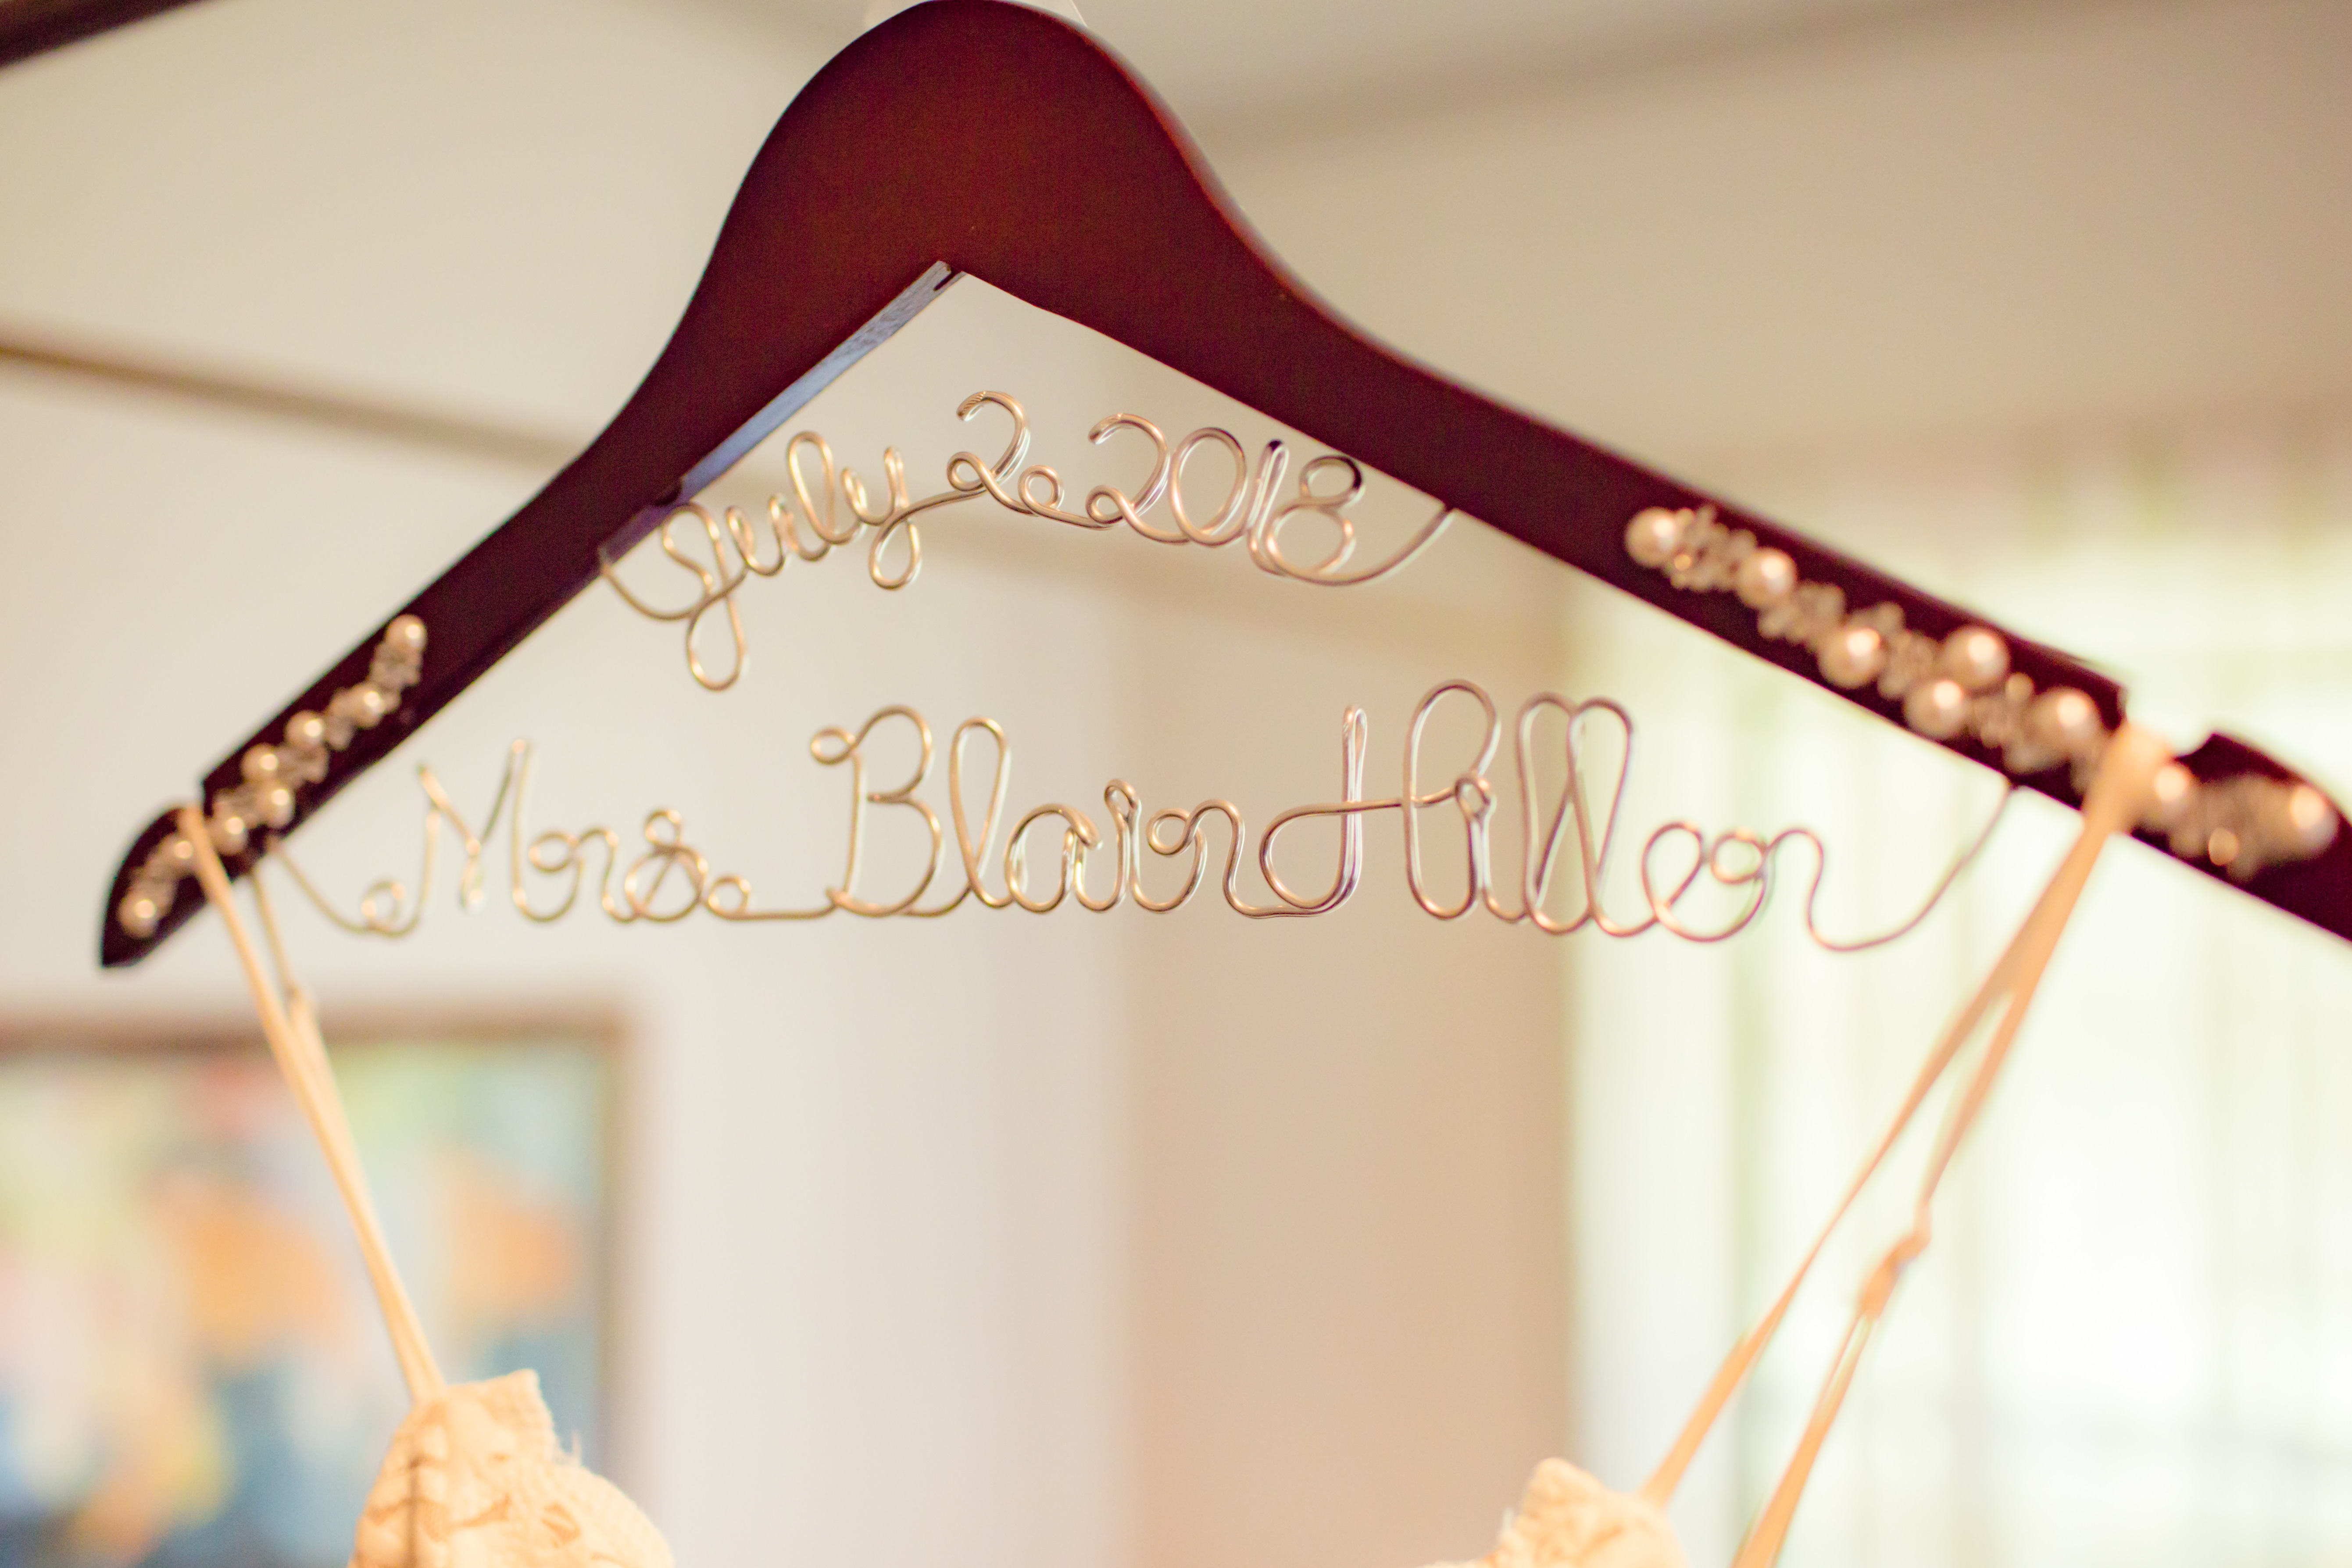 Wedding Gown Hanger | Destination Wedding in Maui | Maui Wedding Planner | Maui's Angels blog